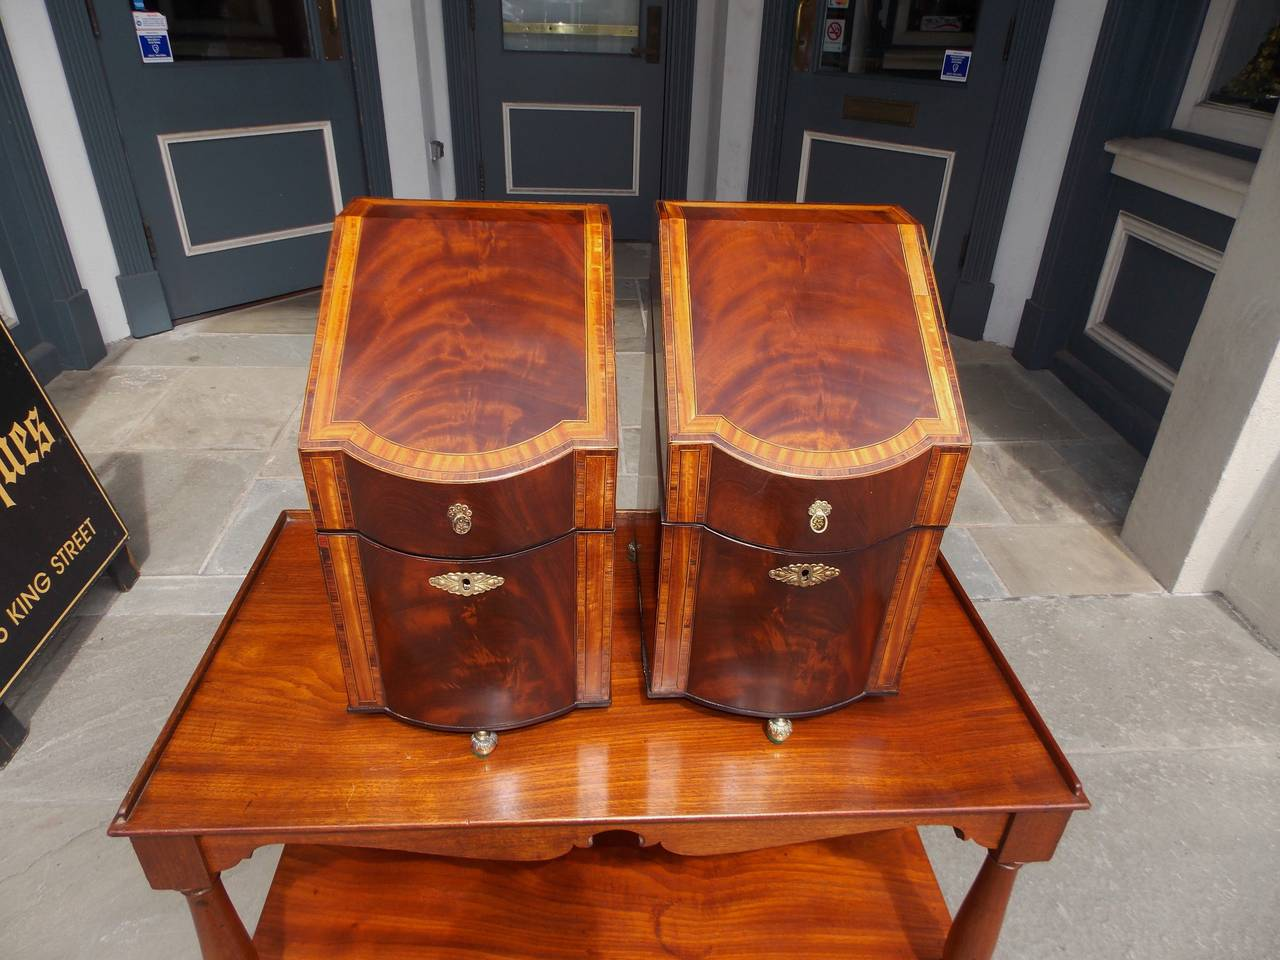 Pair of American mahogany cutlery boxes with inlaid satinwood banding, tulip wood cross banding, original ormolu mounts & fitted interior, diamond string inlay, and terminating on original brass floral ball feet. The interior is Spanish Cedra and